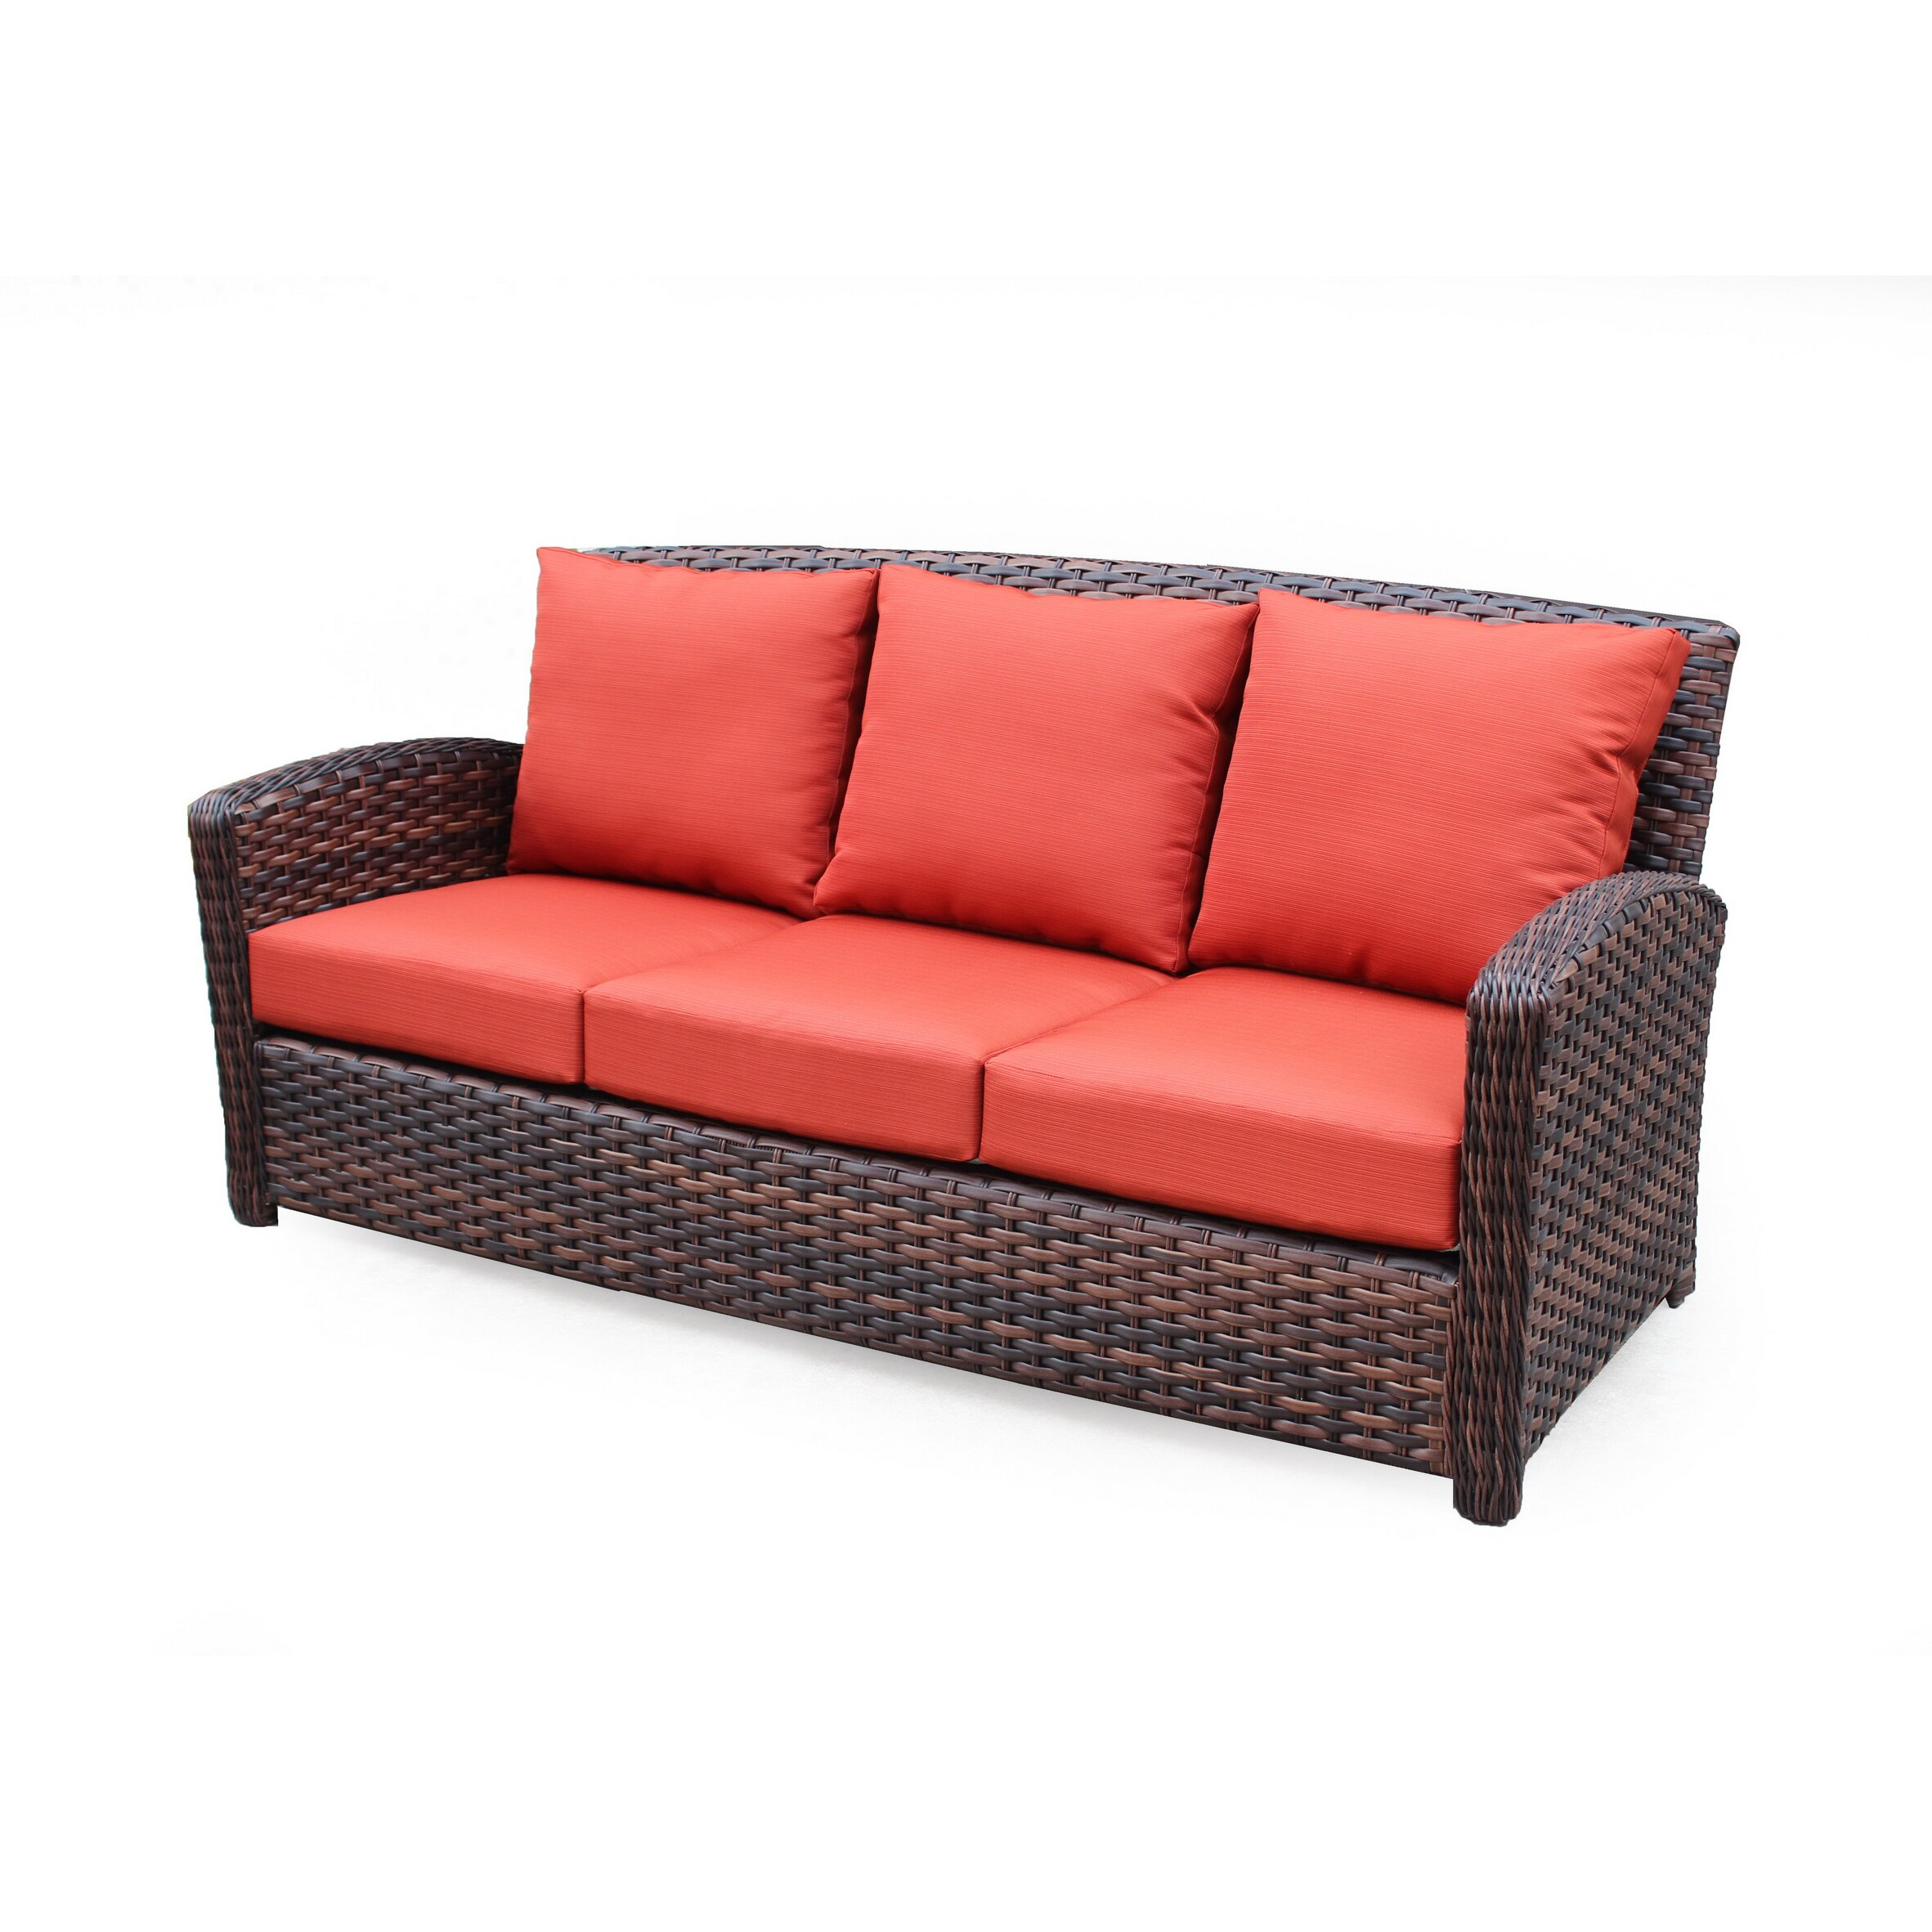 Rattan sofa cushions outdoor wicker furniture cushions for Bamboo outdoor furniture